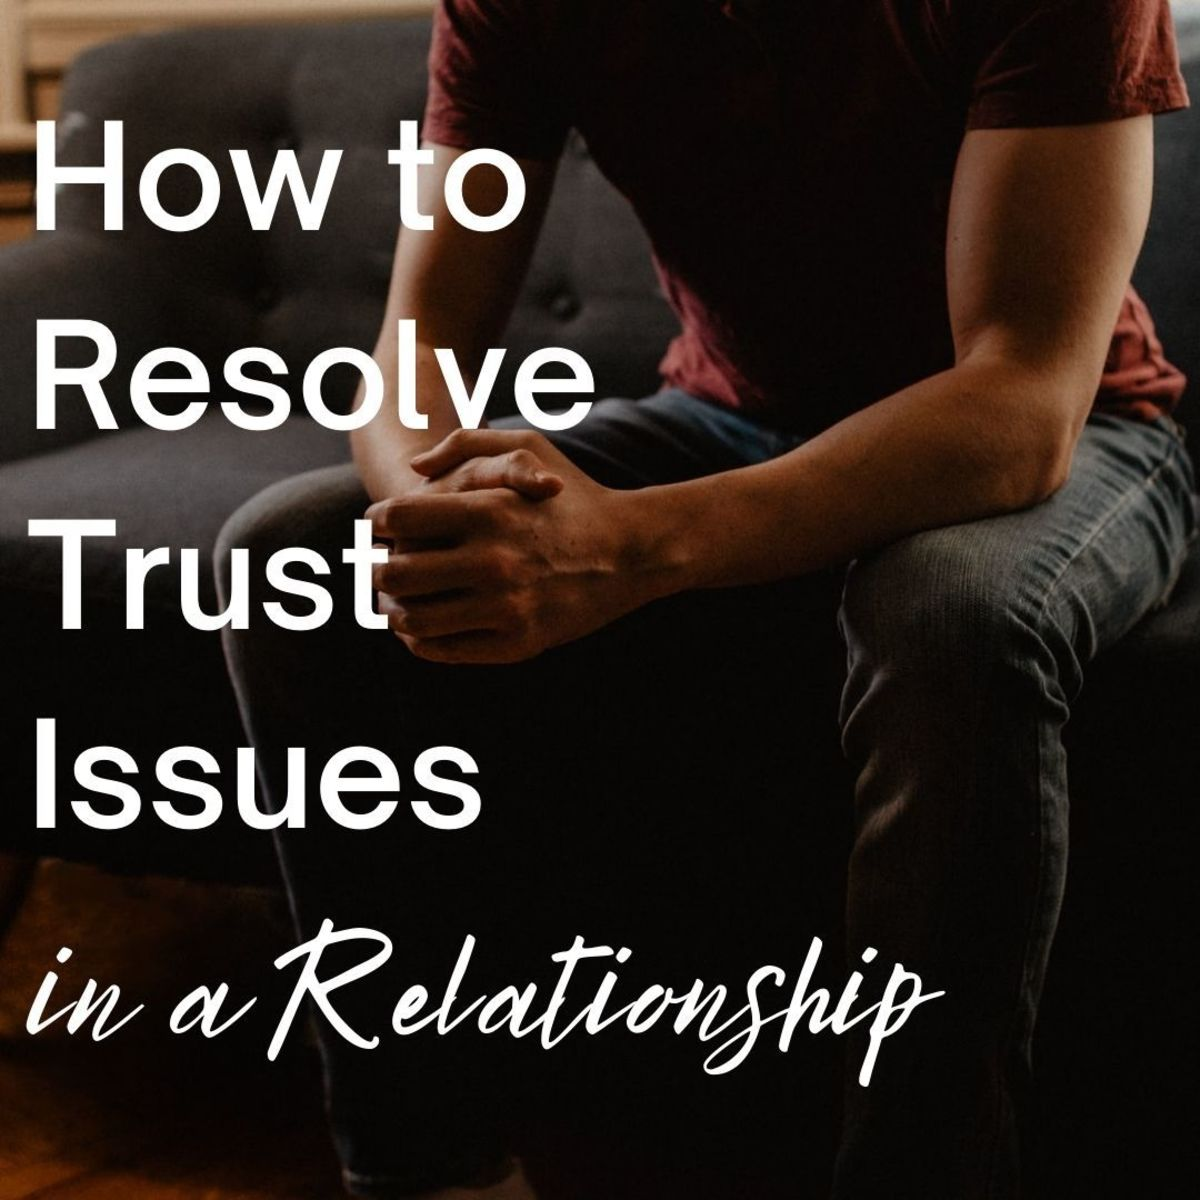 How to Resolve Trust Issues in a Relationship